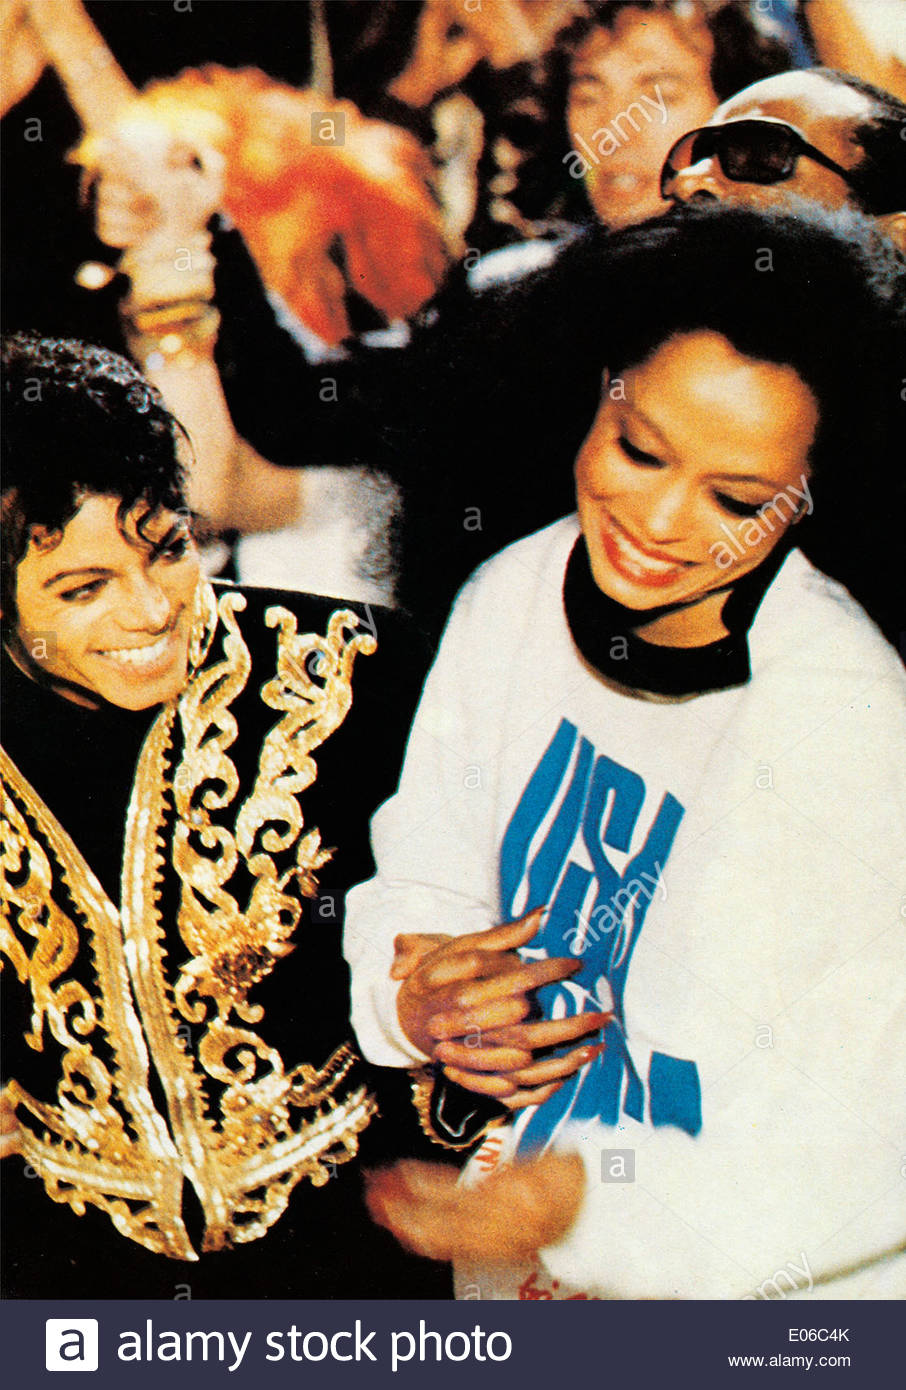 MICHAEL JACKSON & DIANA ROSS USA FOR AFRICA (1985) - Stock Image